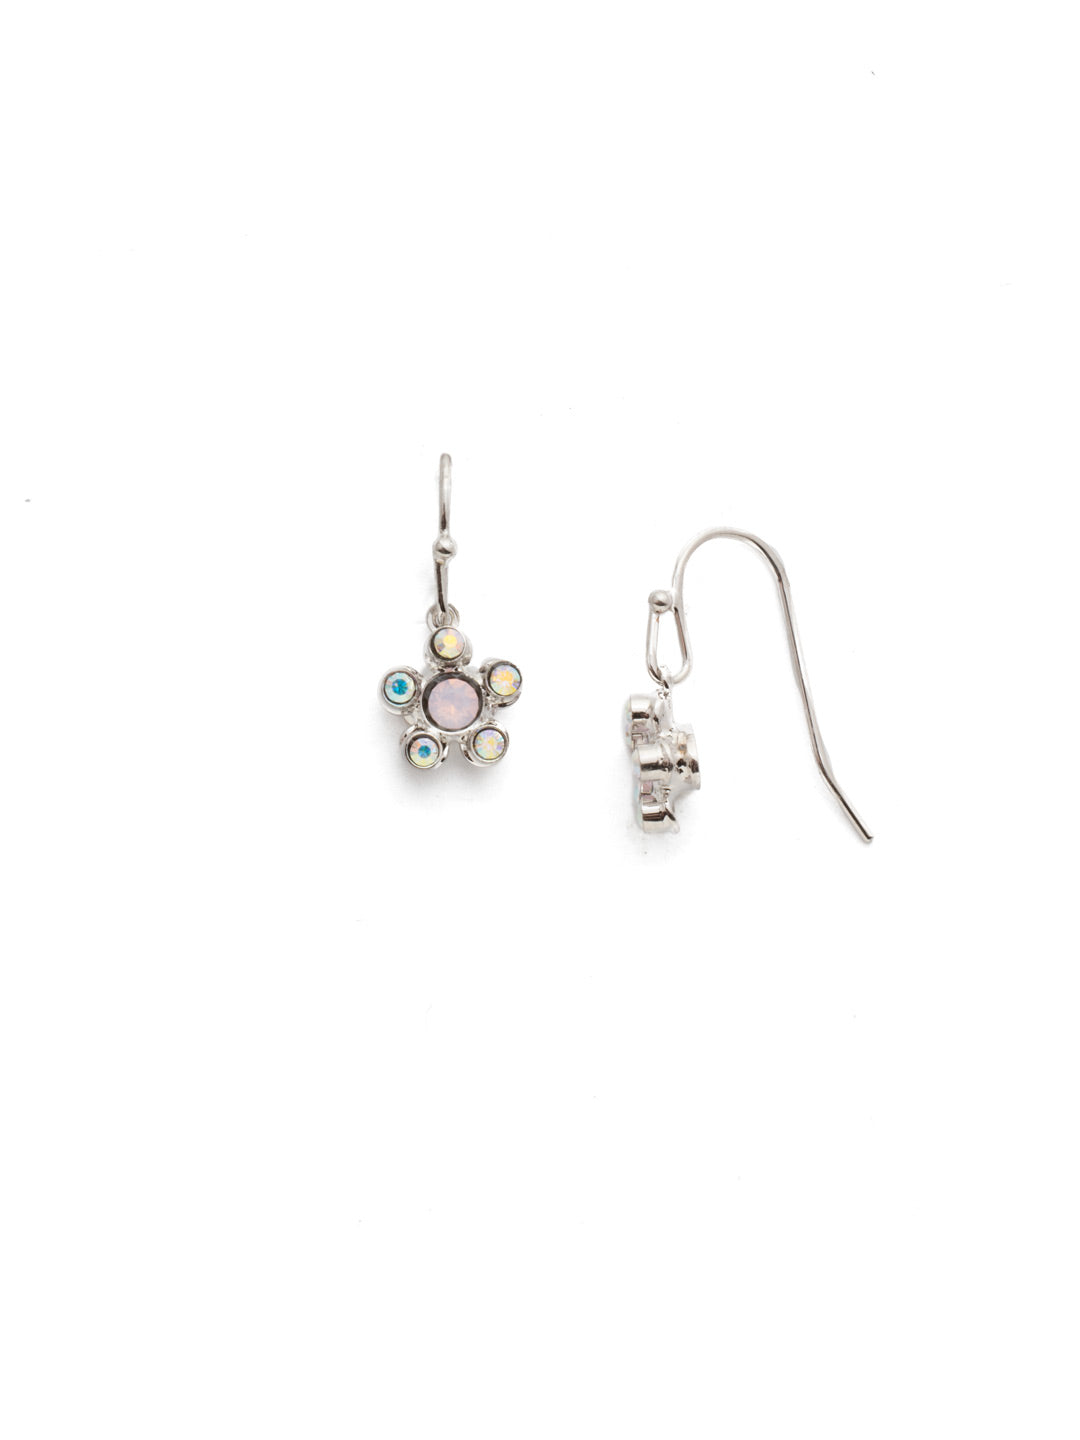 Lulu Dangle Earring - EEK10RHTUL